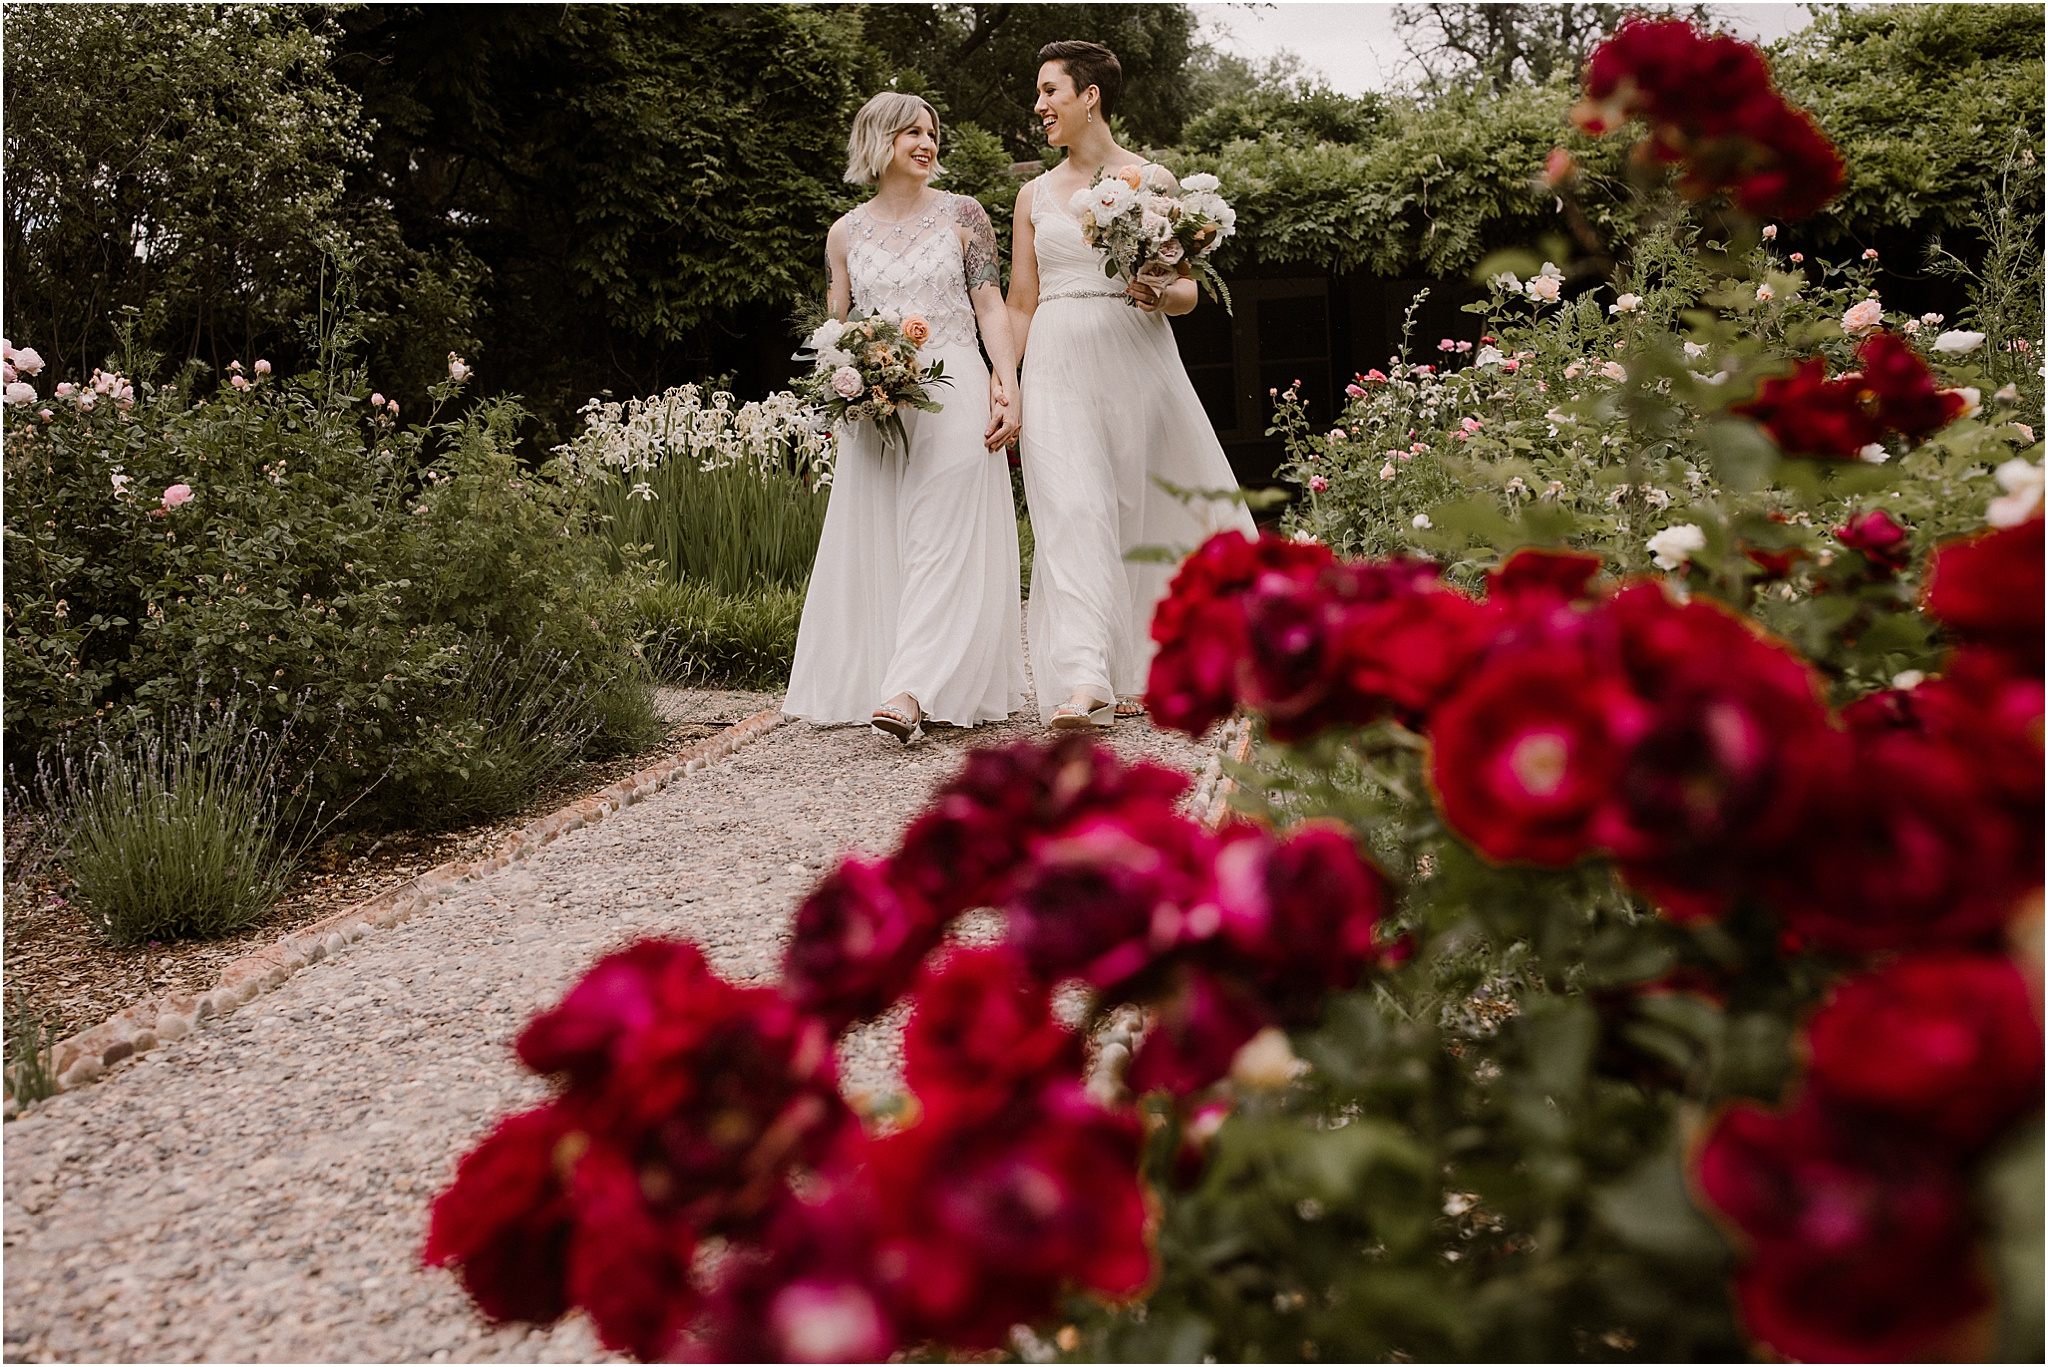 Kelly_Lisa_Los Poblanos_Wedding_Blue Rose Photography51